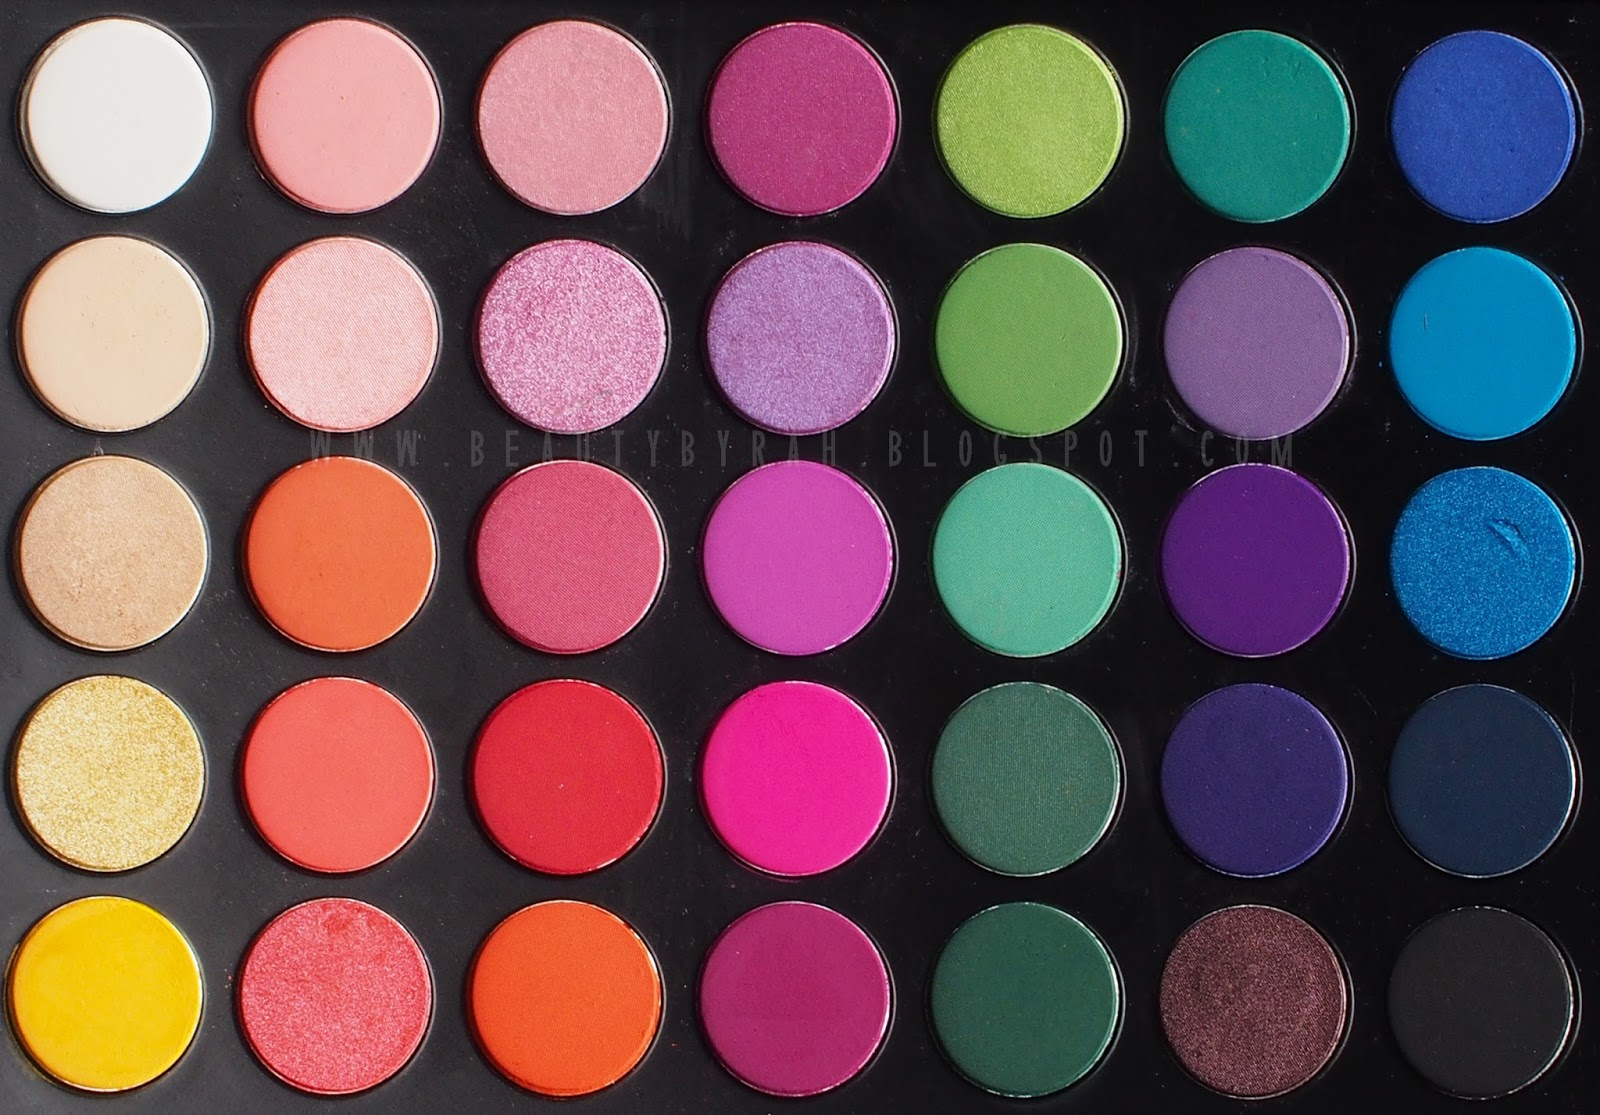 Morphe brushes 35b colour glam palette swatches